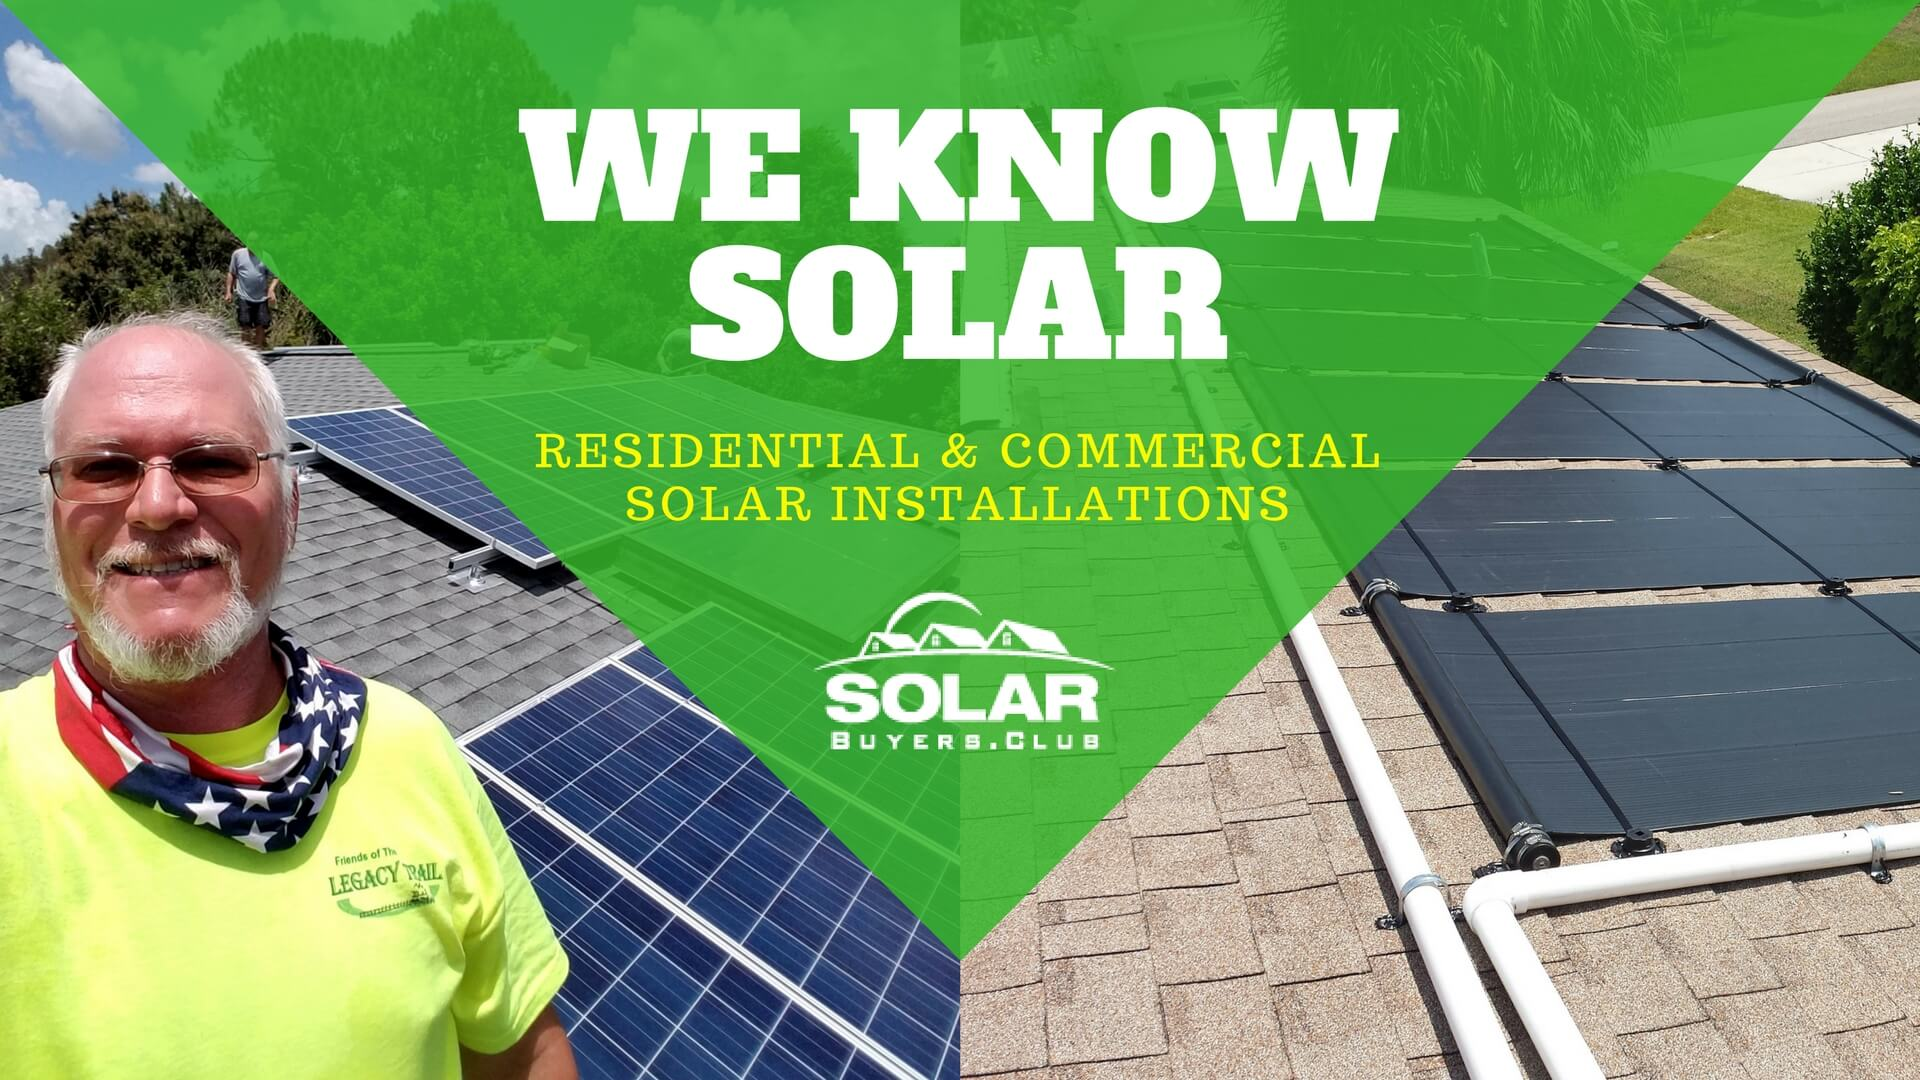 We know solar electric, solar hot water, solar pool heating for your home or business.